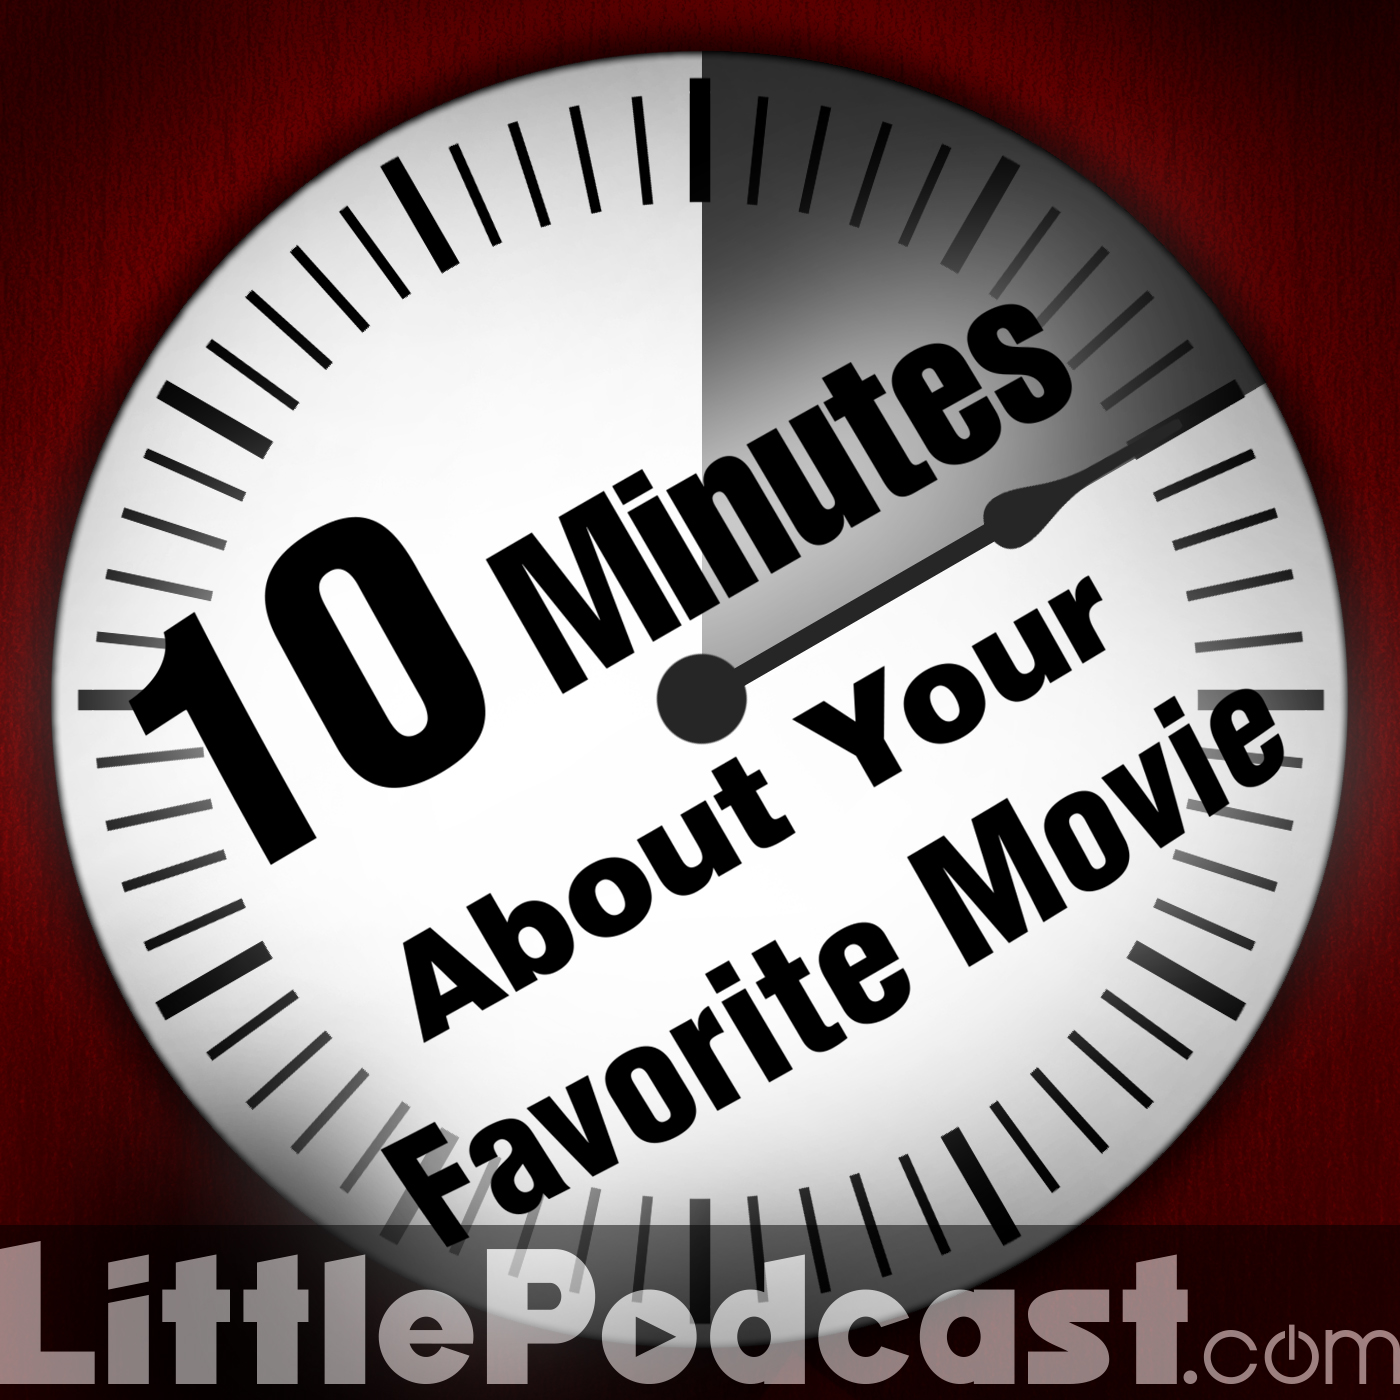 10 Minutes About Your Favorite Movie logo